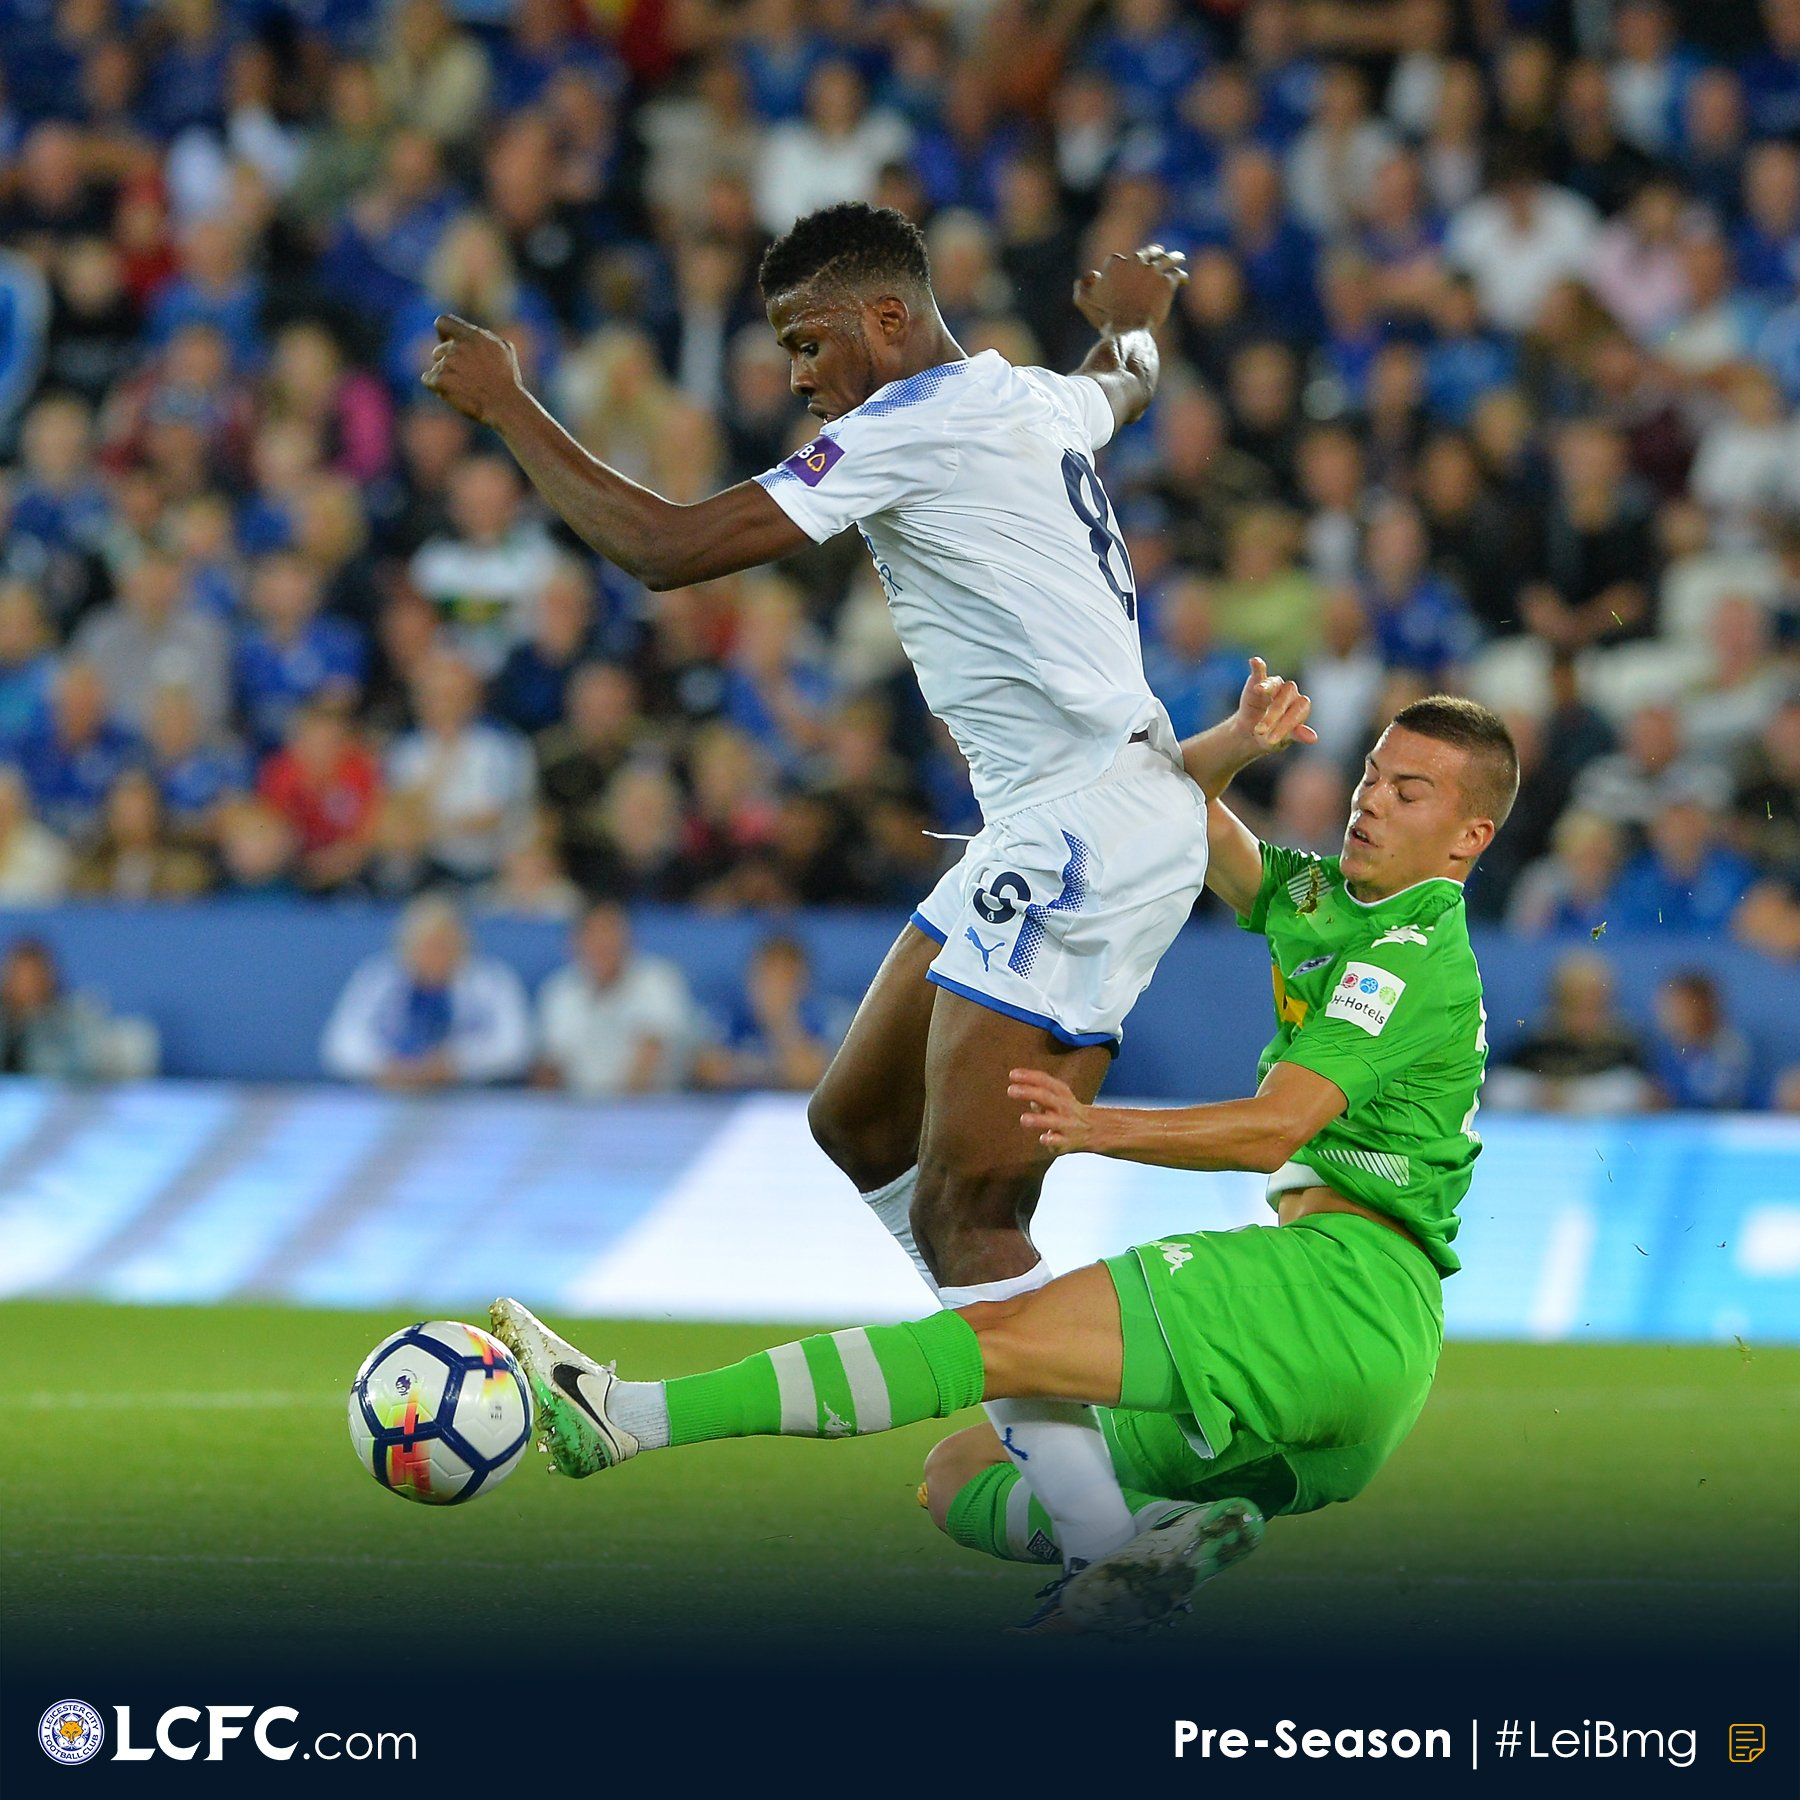 Leicester Boss Praises Iheanacho Impact, Hopes He's Fit For Arsenal Clash